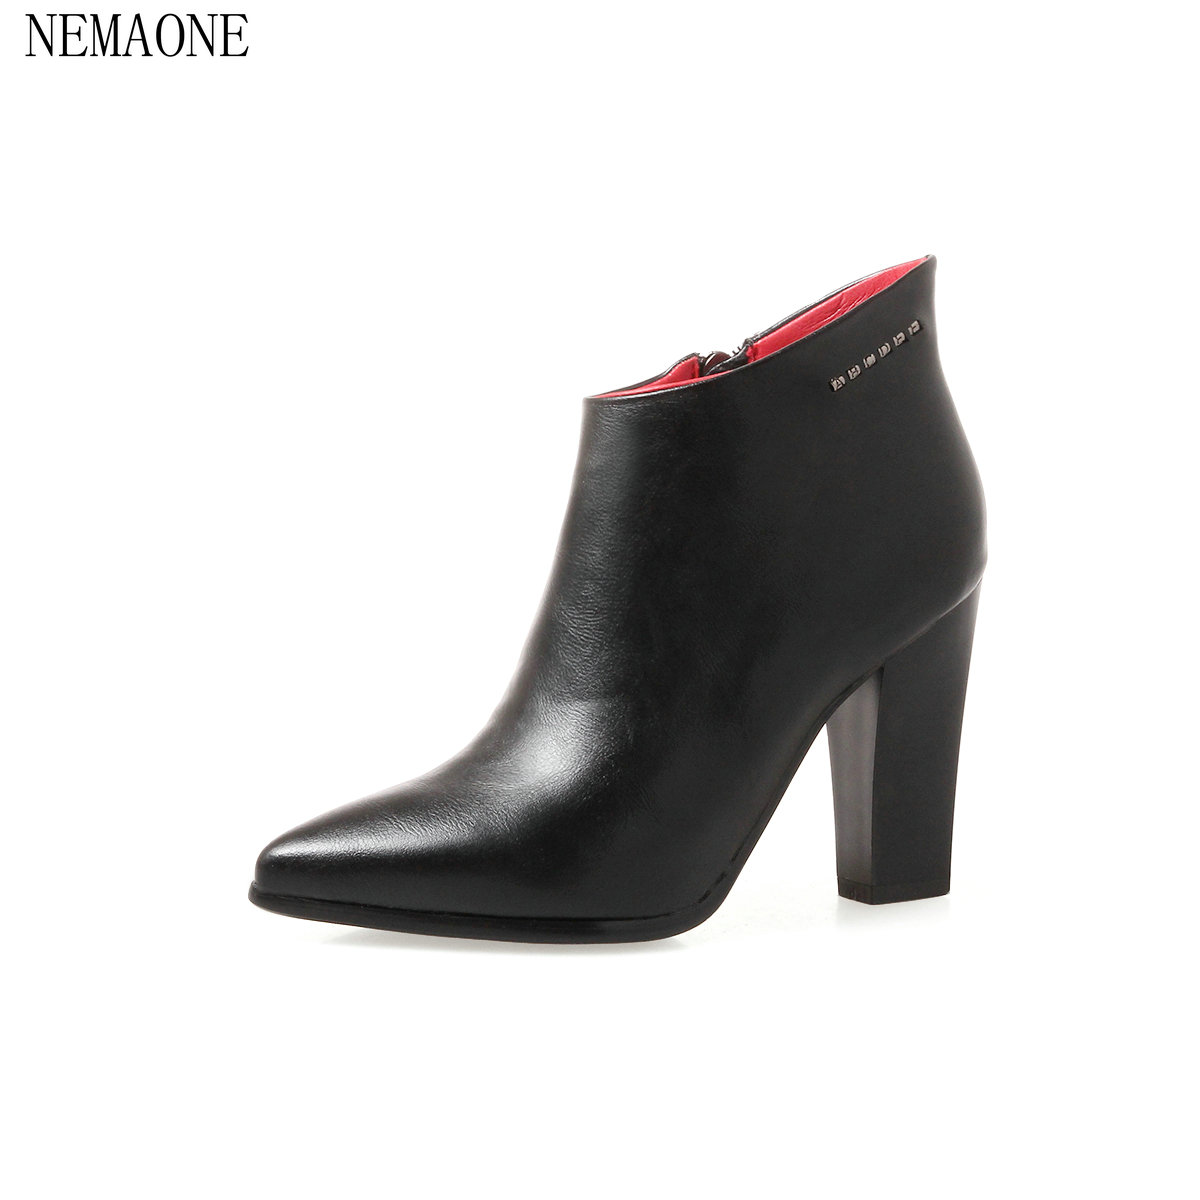 NEMAONE Woman Square High Heel Zipper autumn boots Short Ankle Boots Fashion Round Toe Dress Boots Black green woman platform square high heel buckle ankle boots fashion round toe side zipper dress winter boots black brown gray white